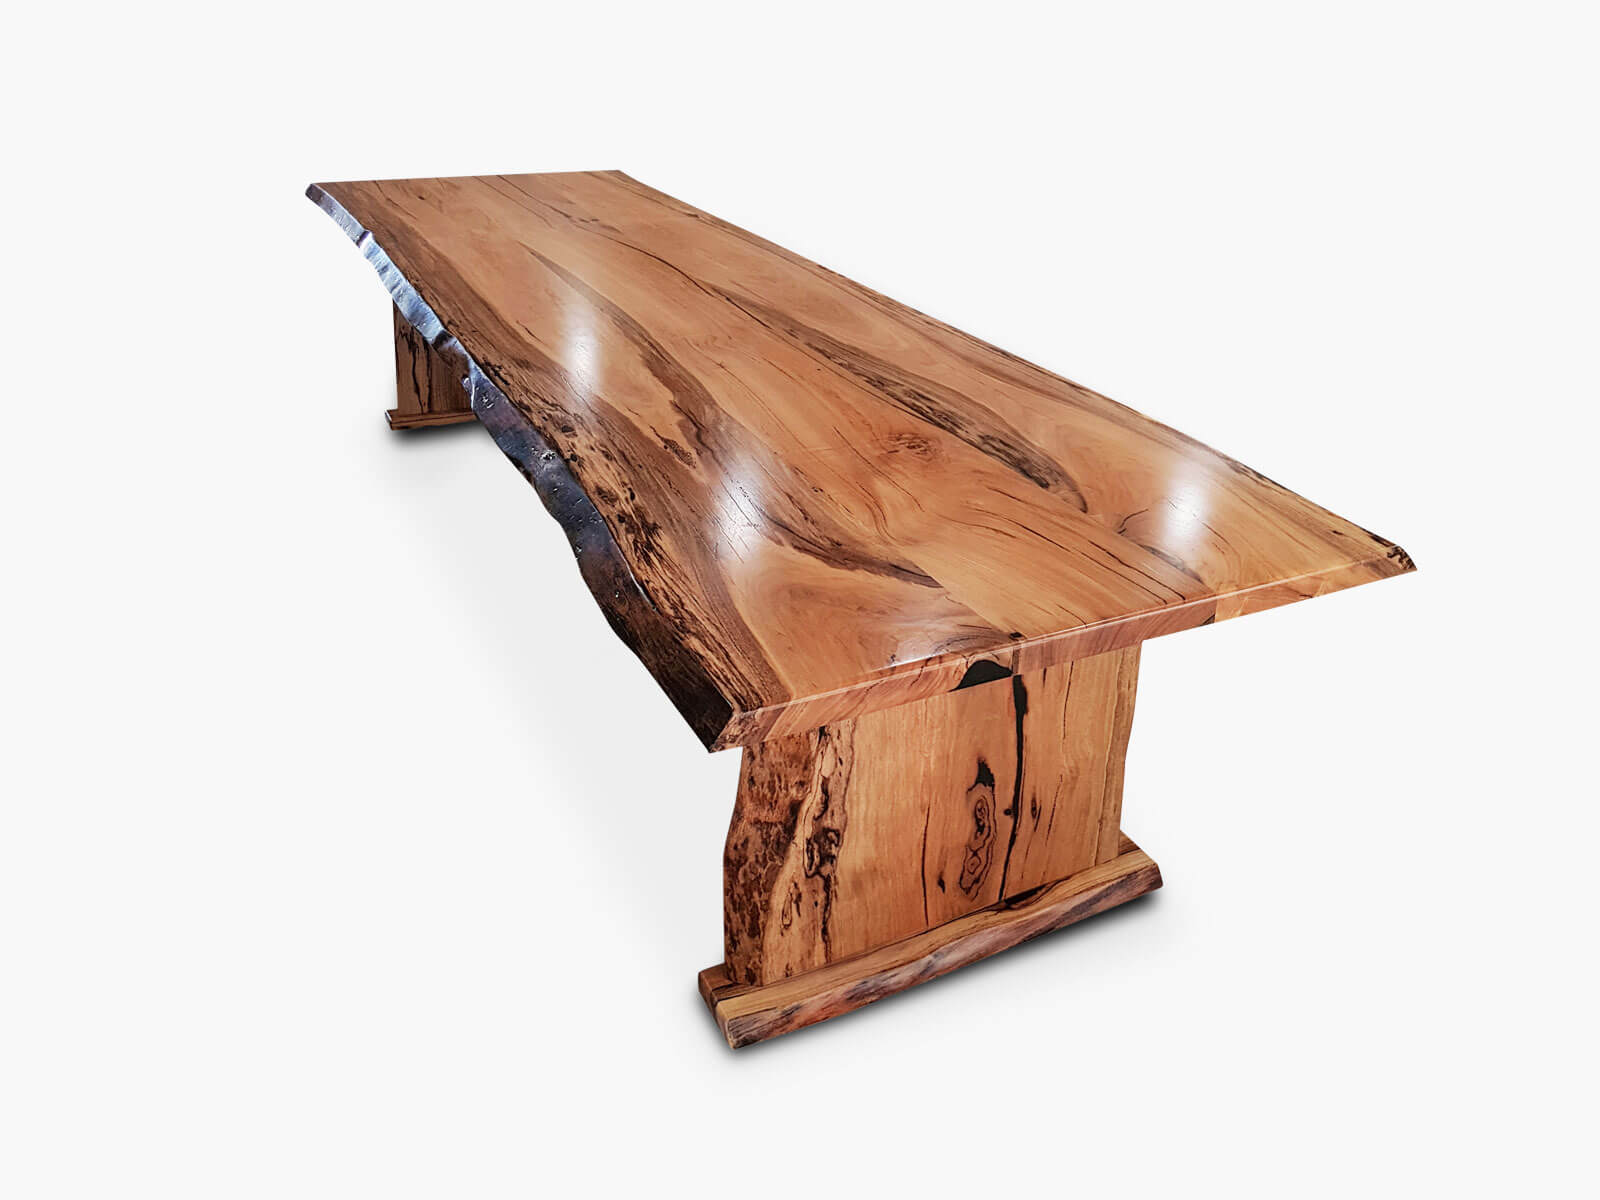 Bentley-Raw Timber Furniture